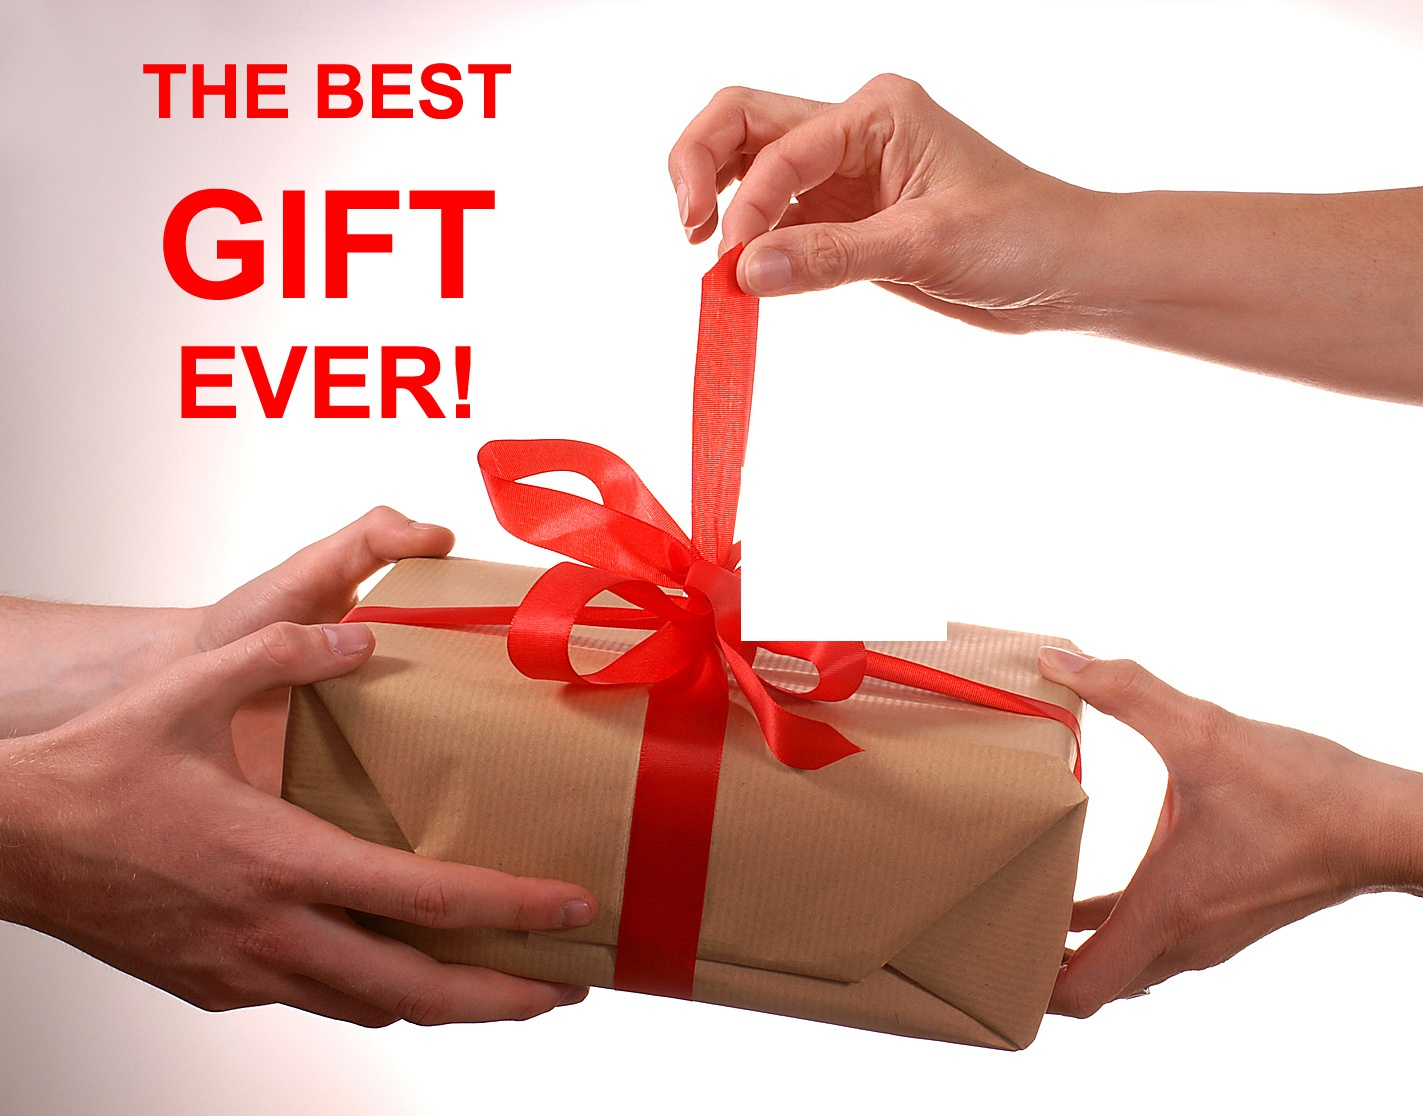 What Is The Best Gift You Can Give To Someone?